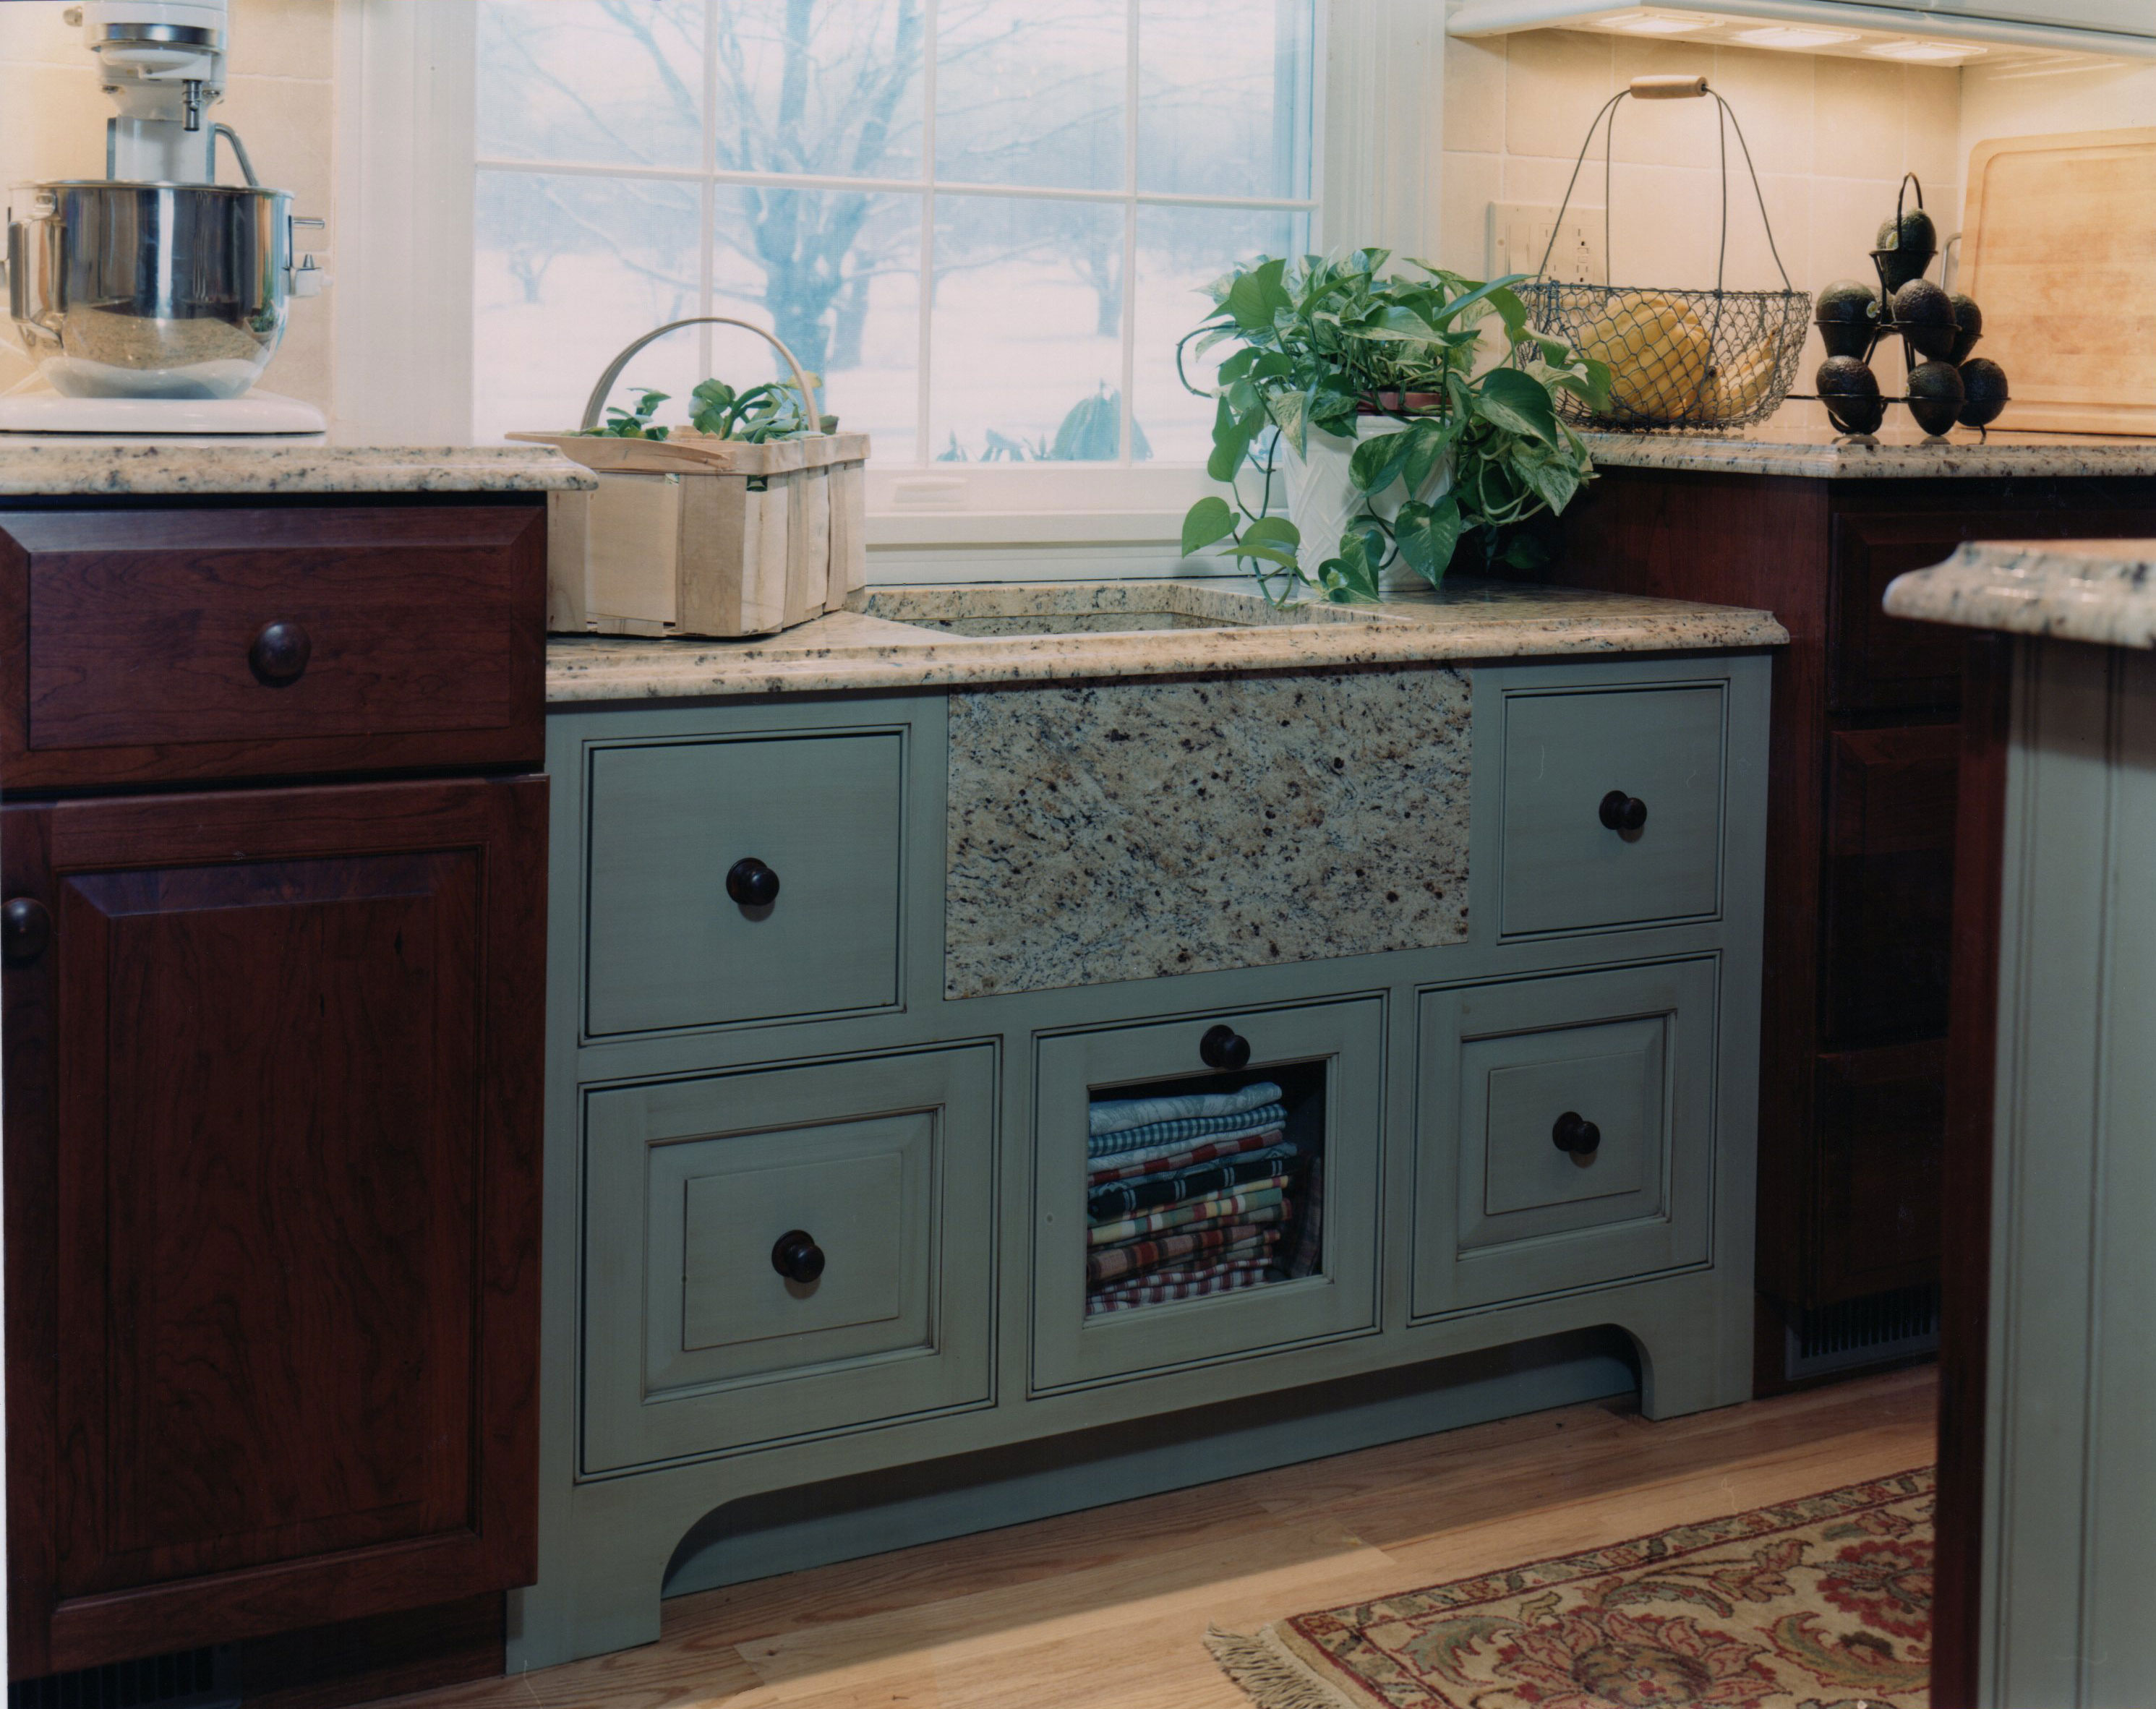 Currier Kitchens and Baths Country Kitchen Farmers Sink